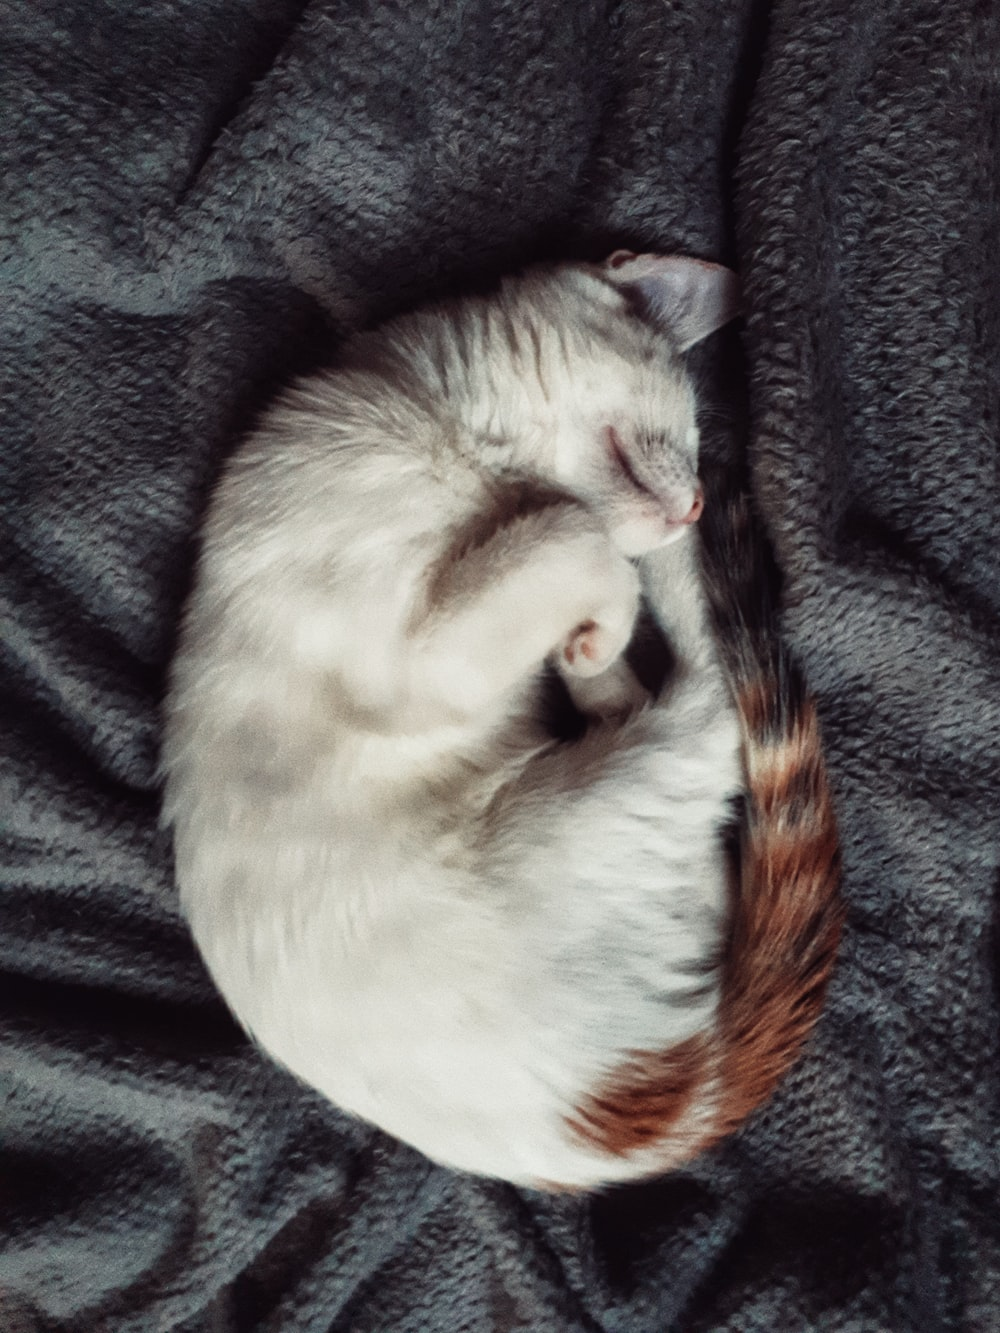 white and brown cat lying on black textile